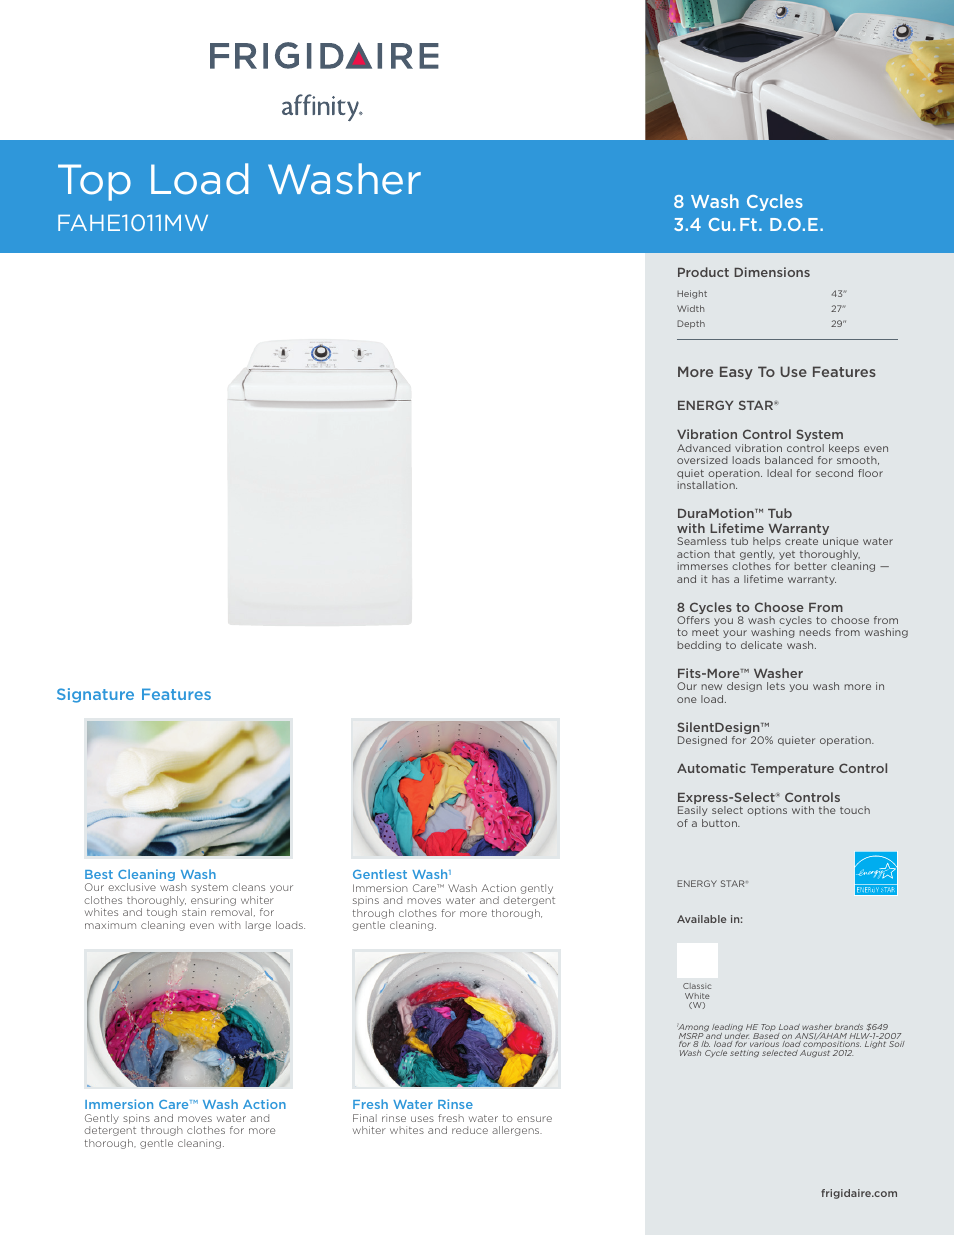 Frigidaire Affinity Washer Fahe1011mw User Manual 3 Pages